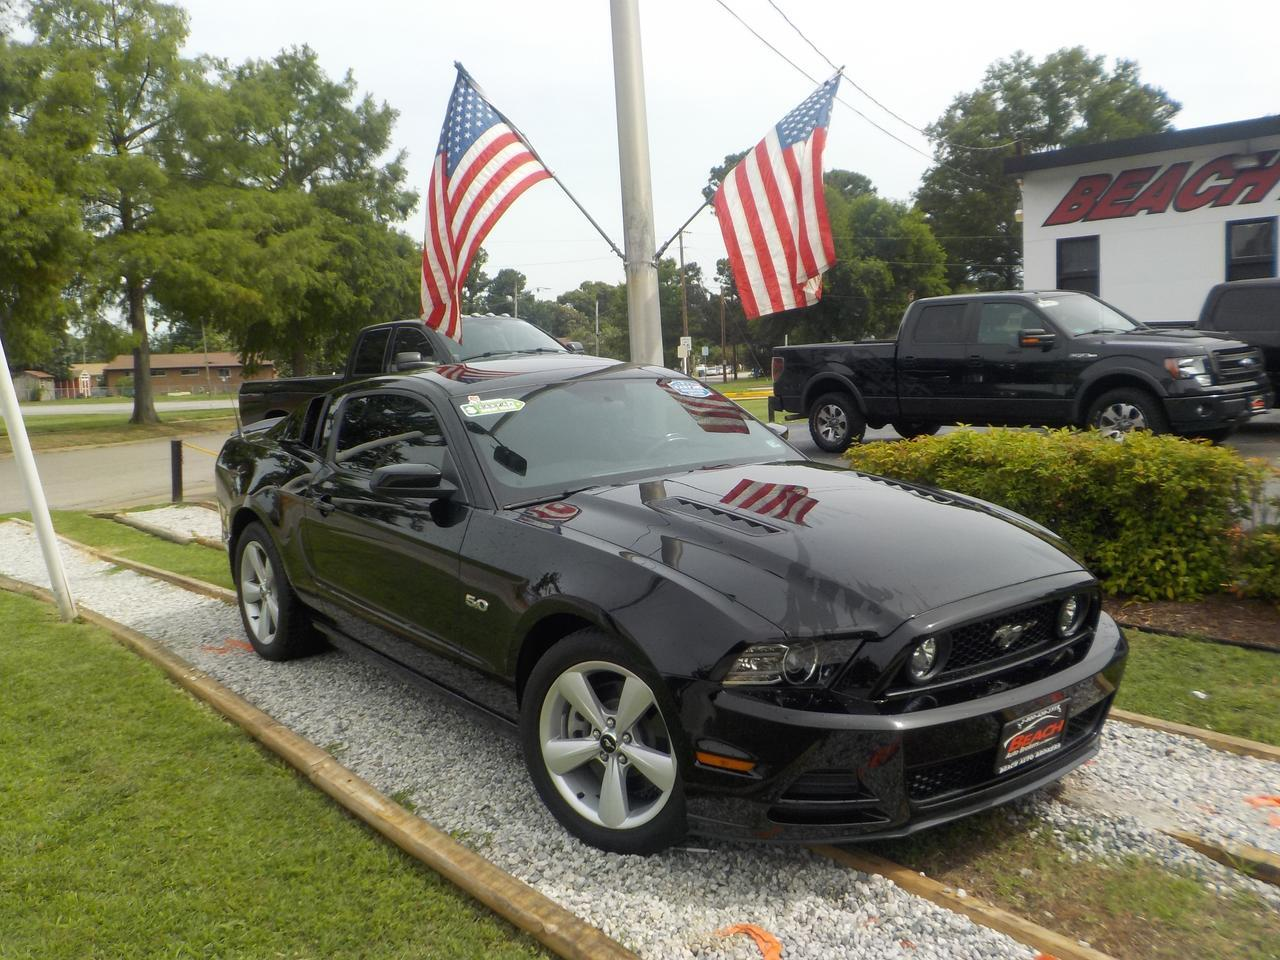 2013 FORD MUSTANG GT, WARRANTY, MANUAL, SIRIUS RADIO, 6 DISC CD PLAYER, AUX  PORT, USB PORT, ONLY 46K MILES!